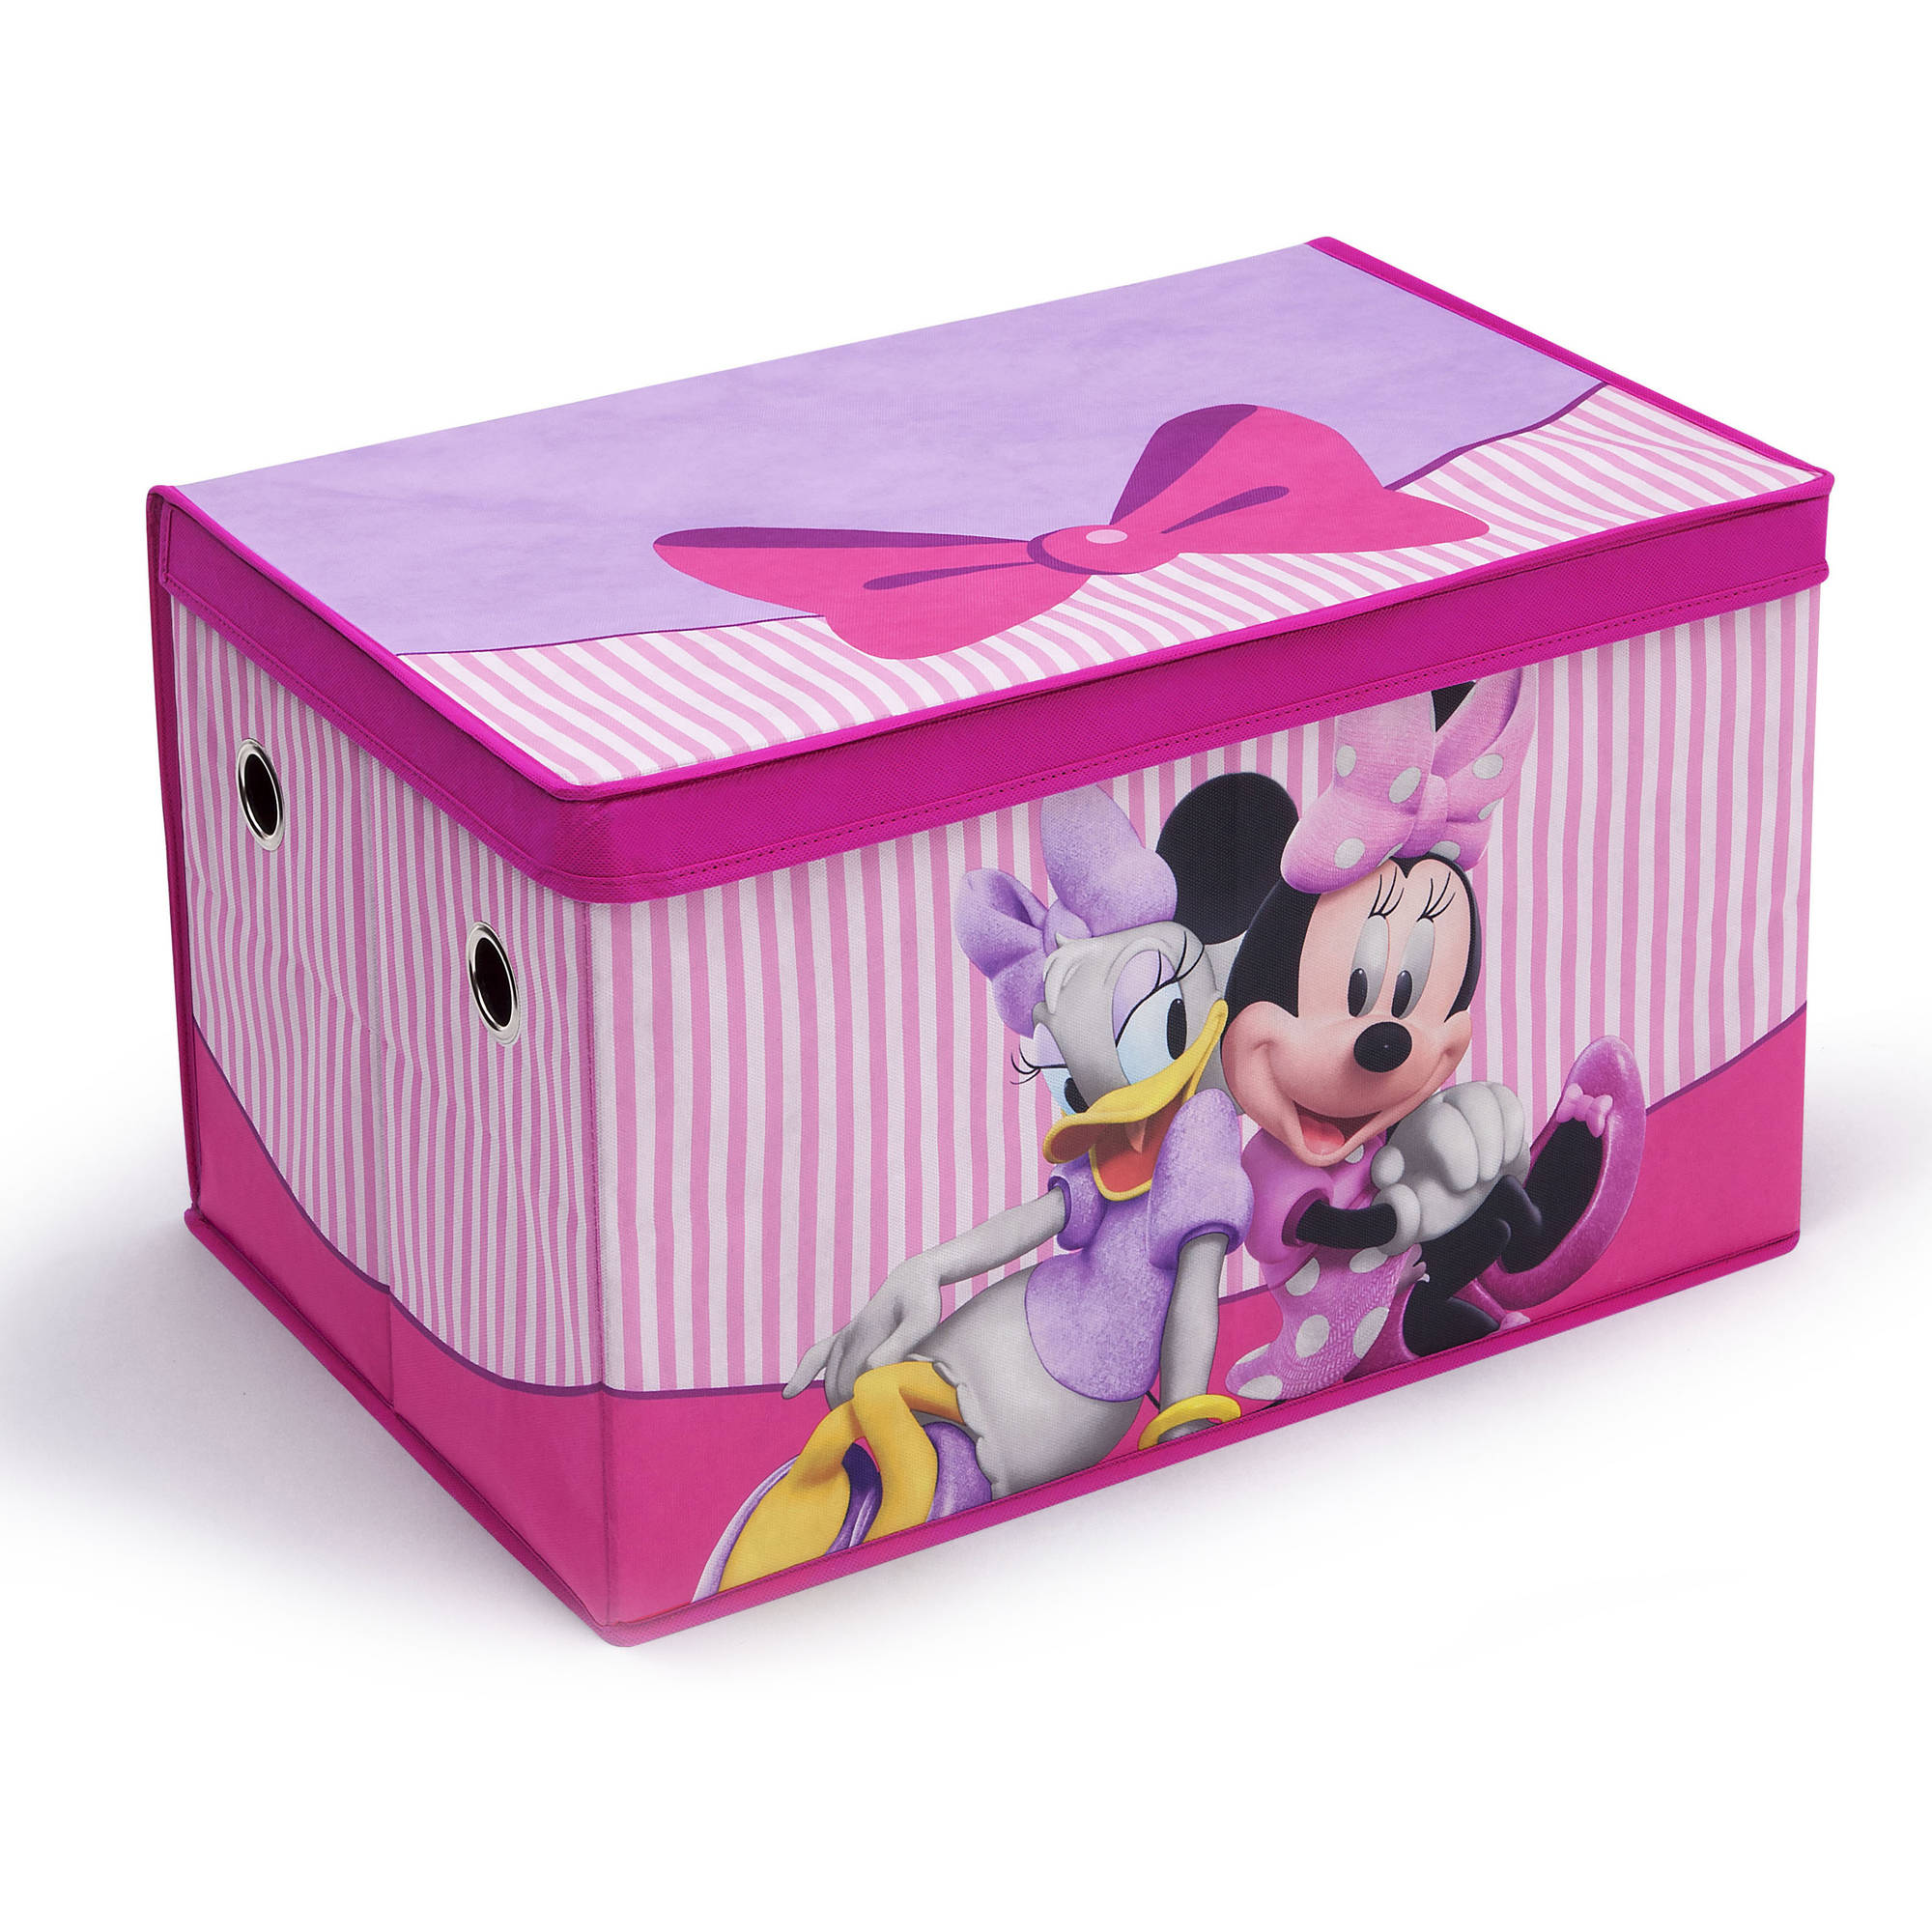 Disney Minnie Mouse Art Desk Withfabric Toy Box Playroom